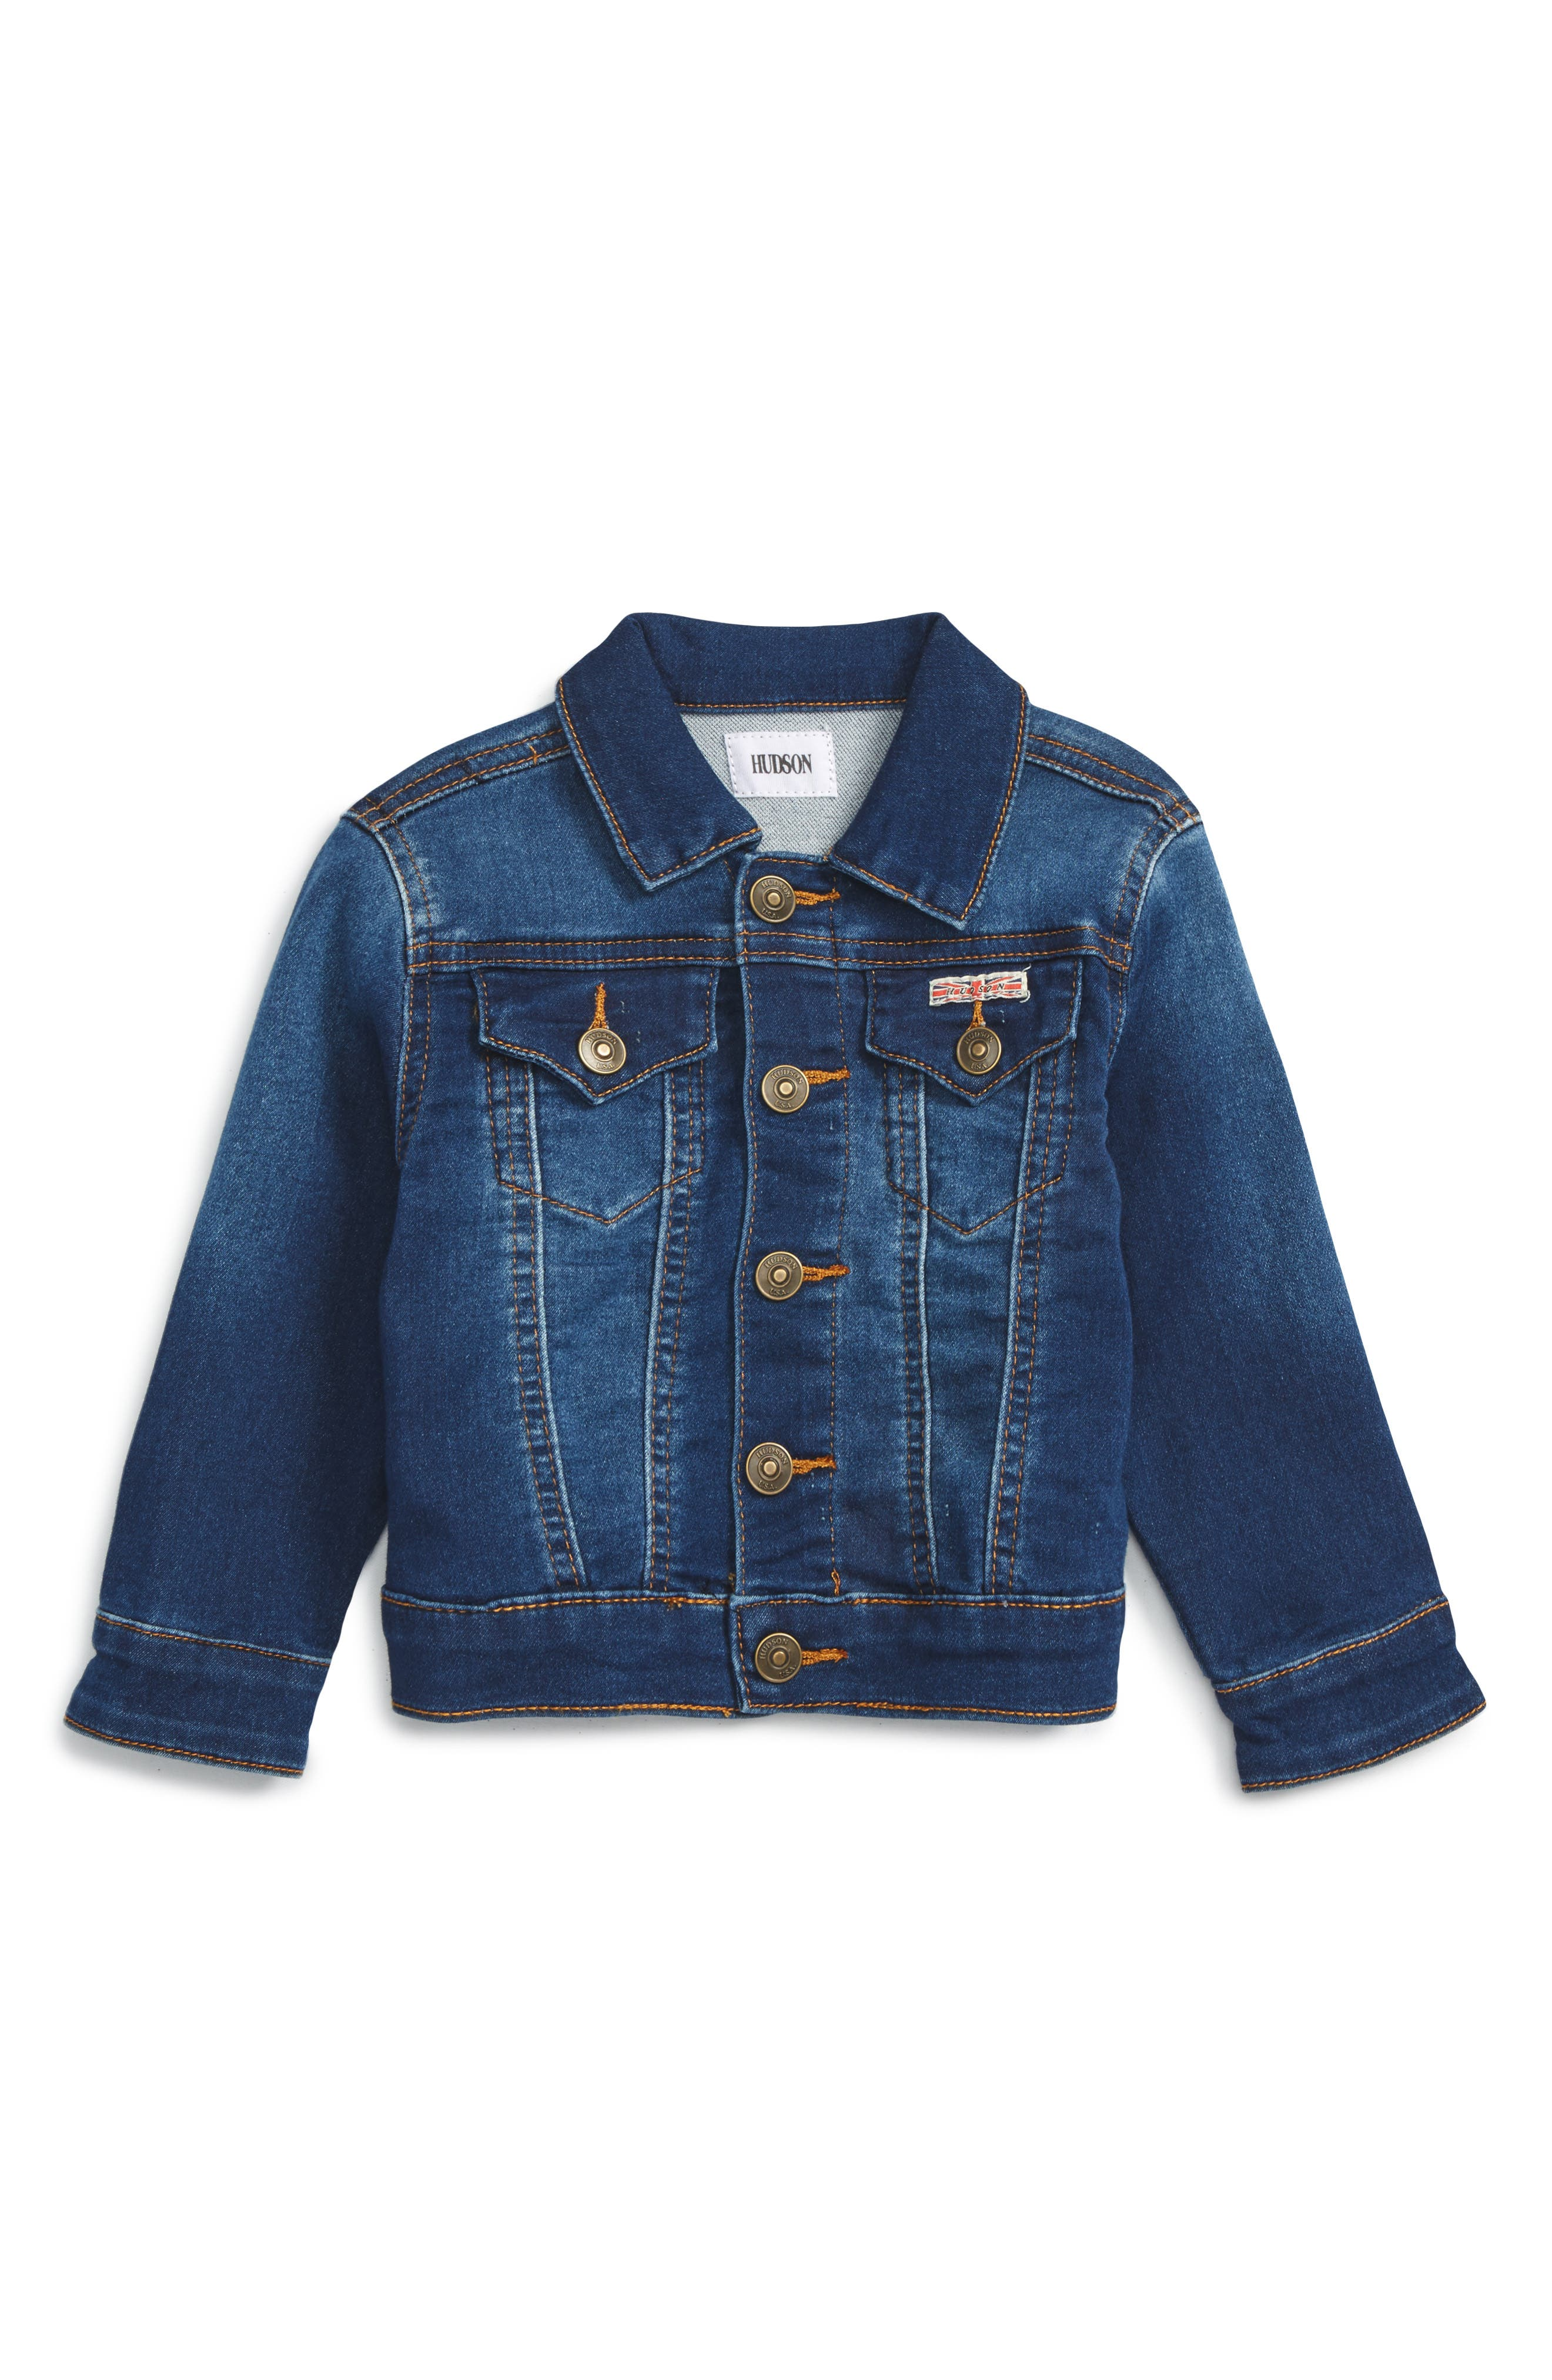 HUDSON KIDS French Terry Jacket